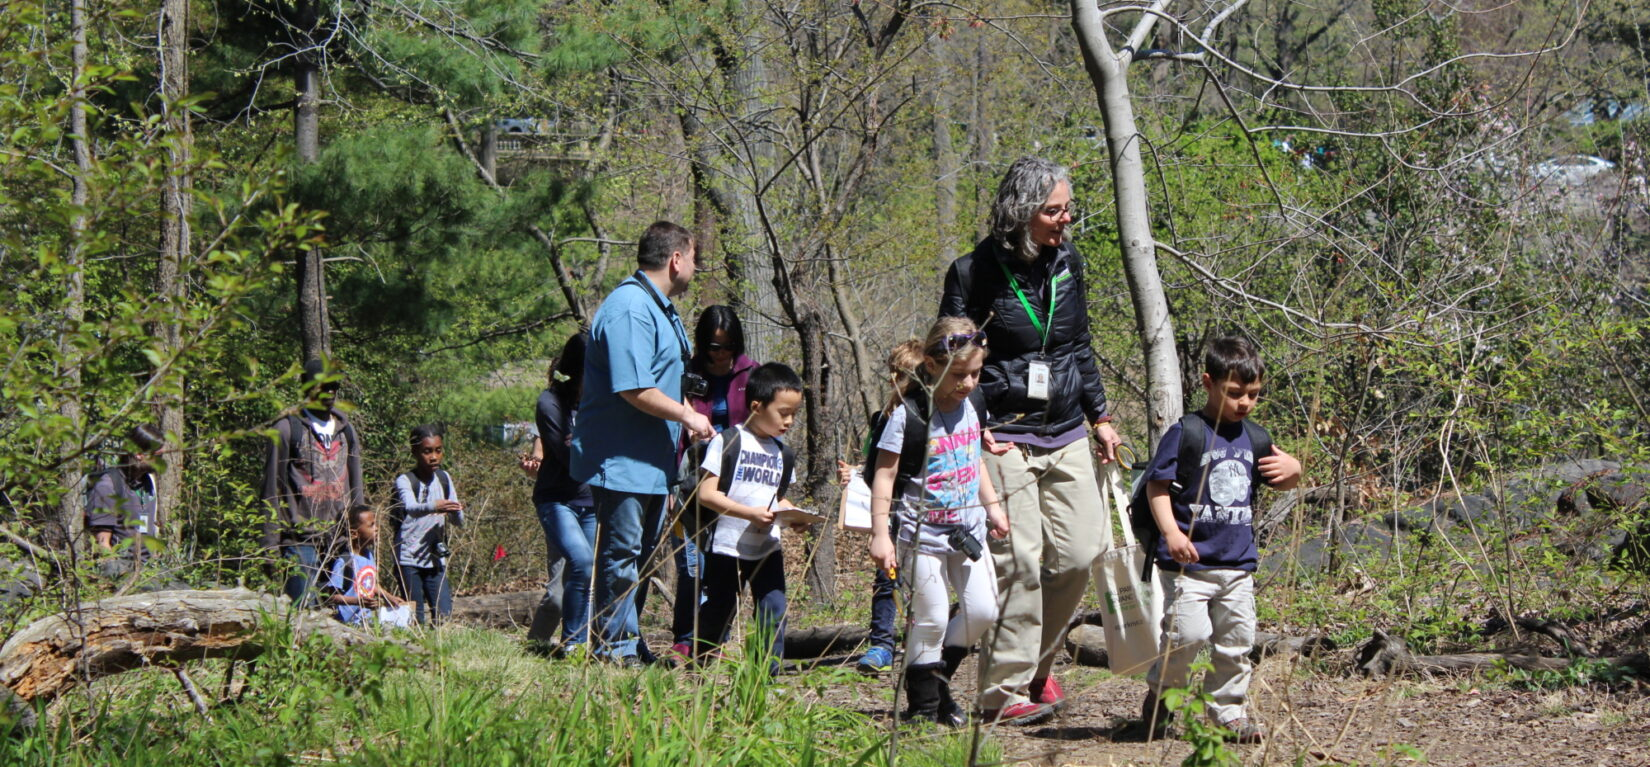 Families taking a woodland tour with a Conservancy guide